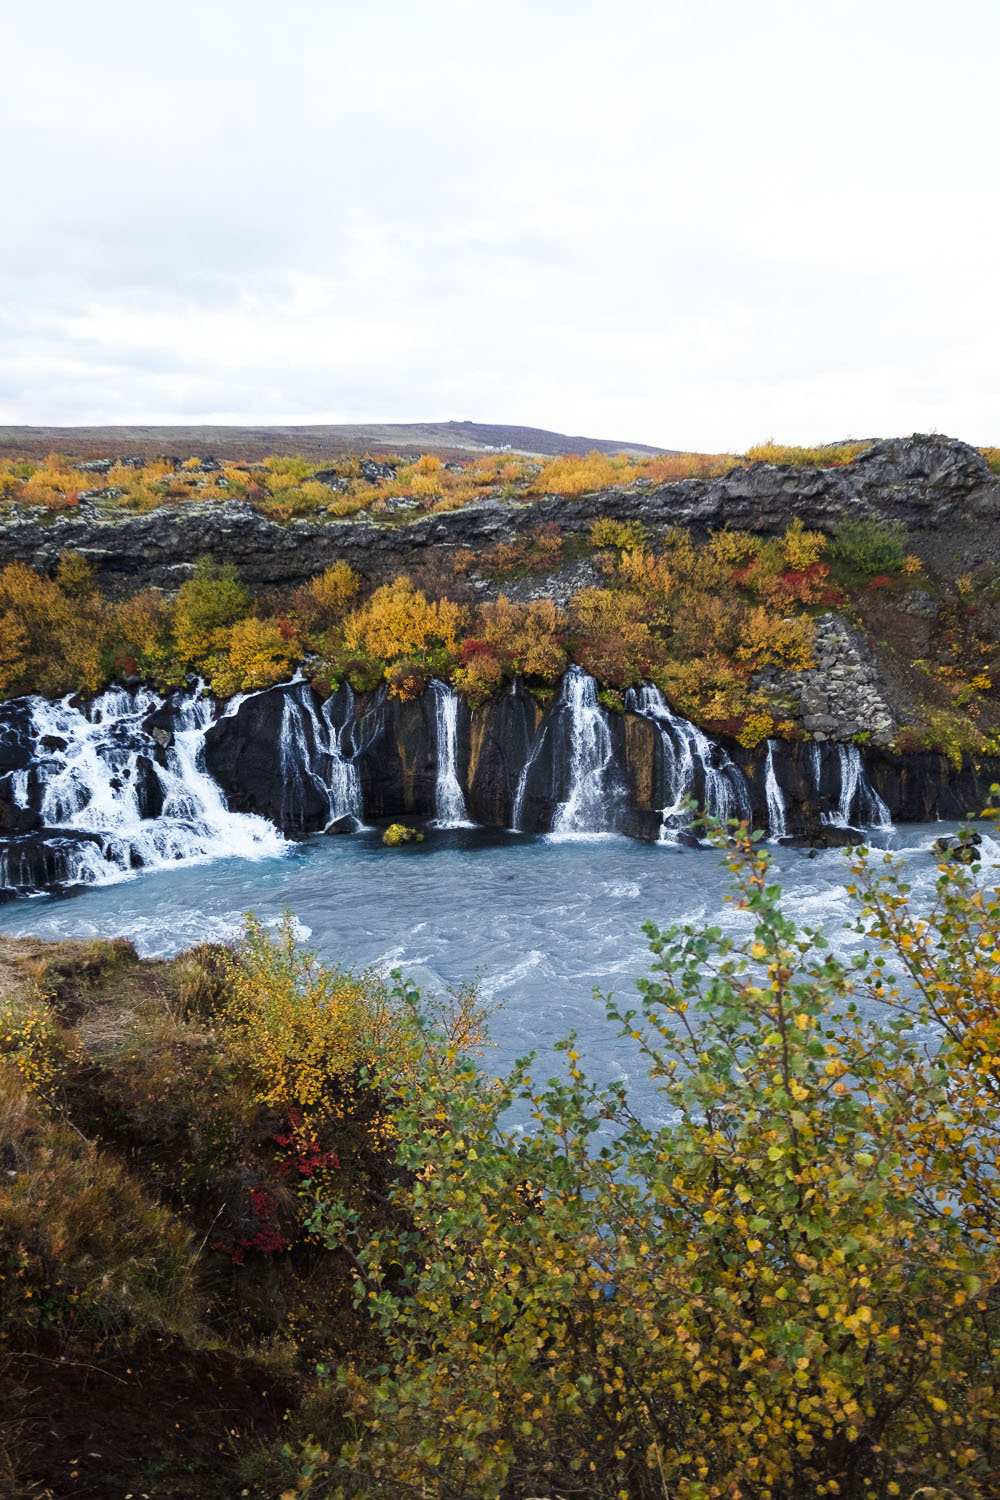 Hraunfossar waterfalls in West Iceland are formed by rivulets streaming over a distance of about 900 metres out of the Hallmundarhraun, a lava field which flowed from an eruption of one of the volcanoes lying under the glacier Langjökull.